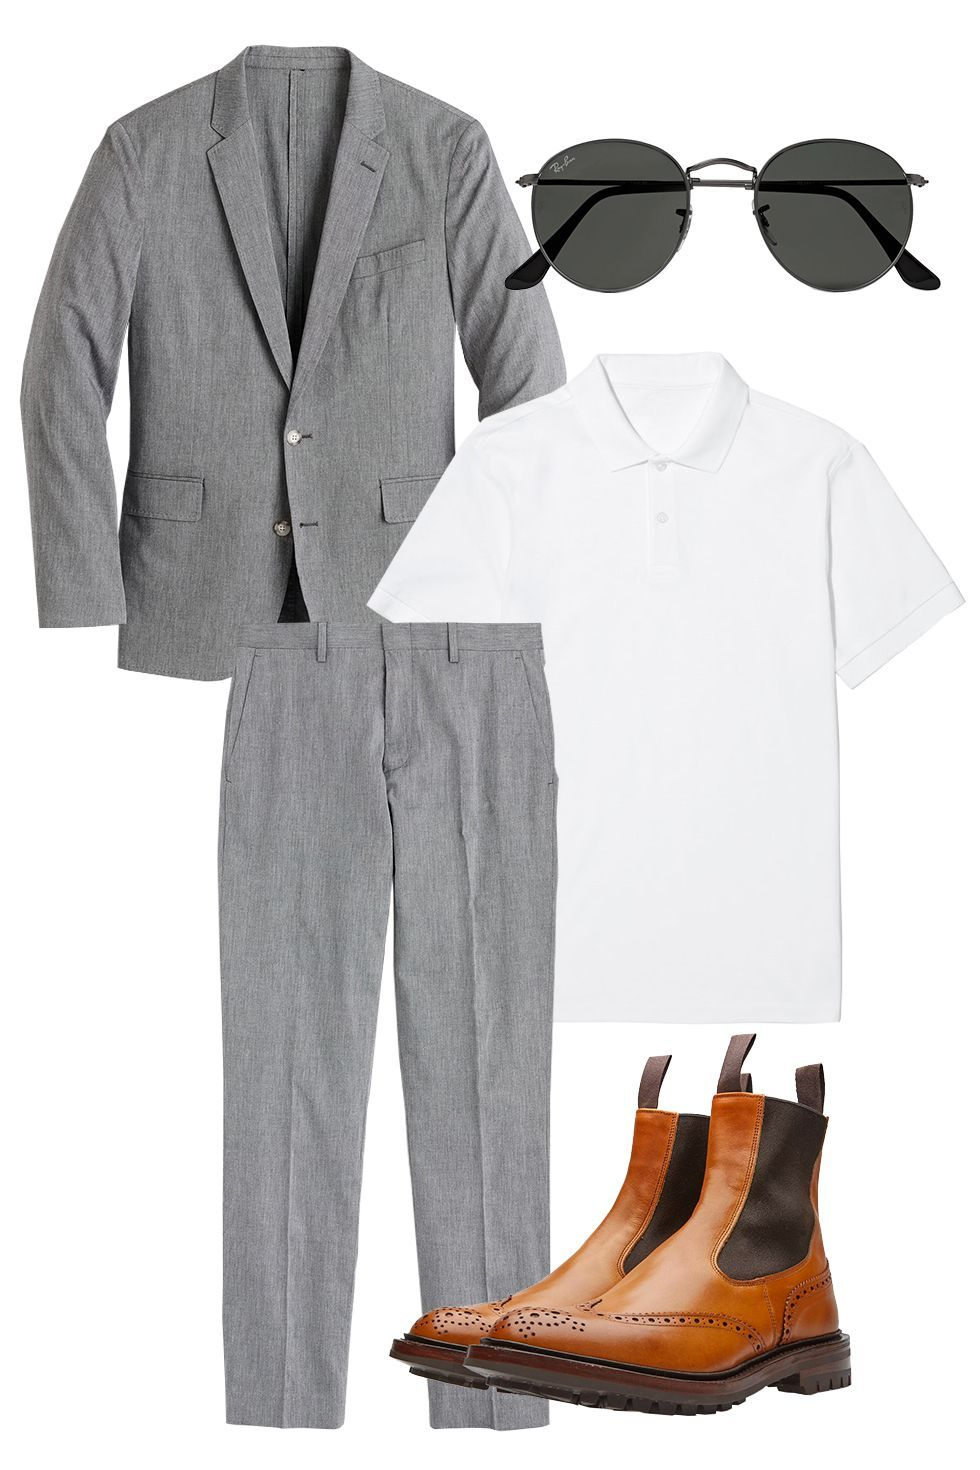 20 Fashionable Easter Outfit Ideas for Men 2019 20 Fashionable Easter Outfit Ideas for Men 2019 new photo